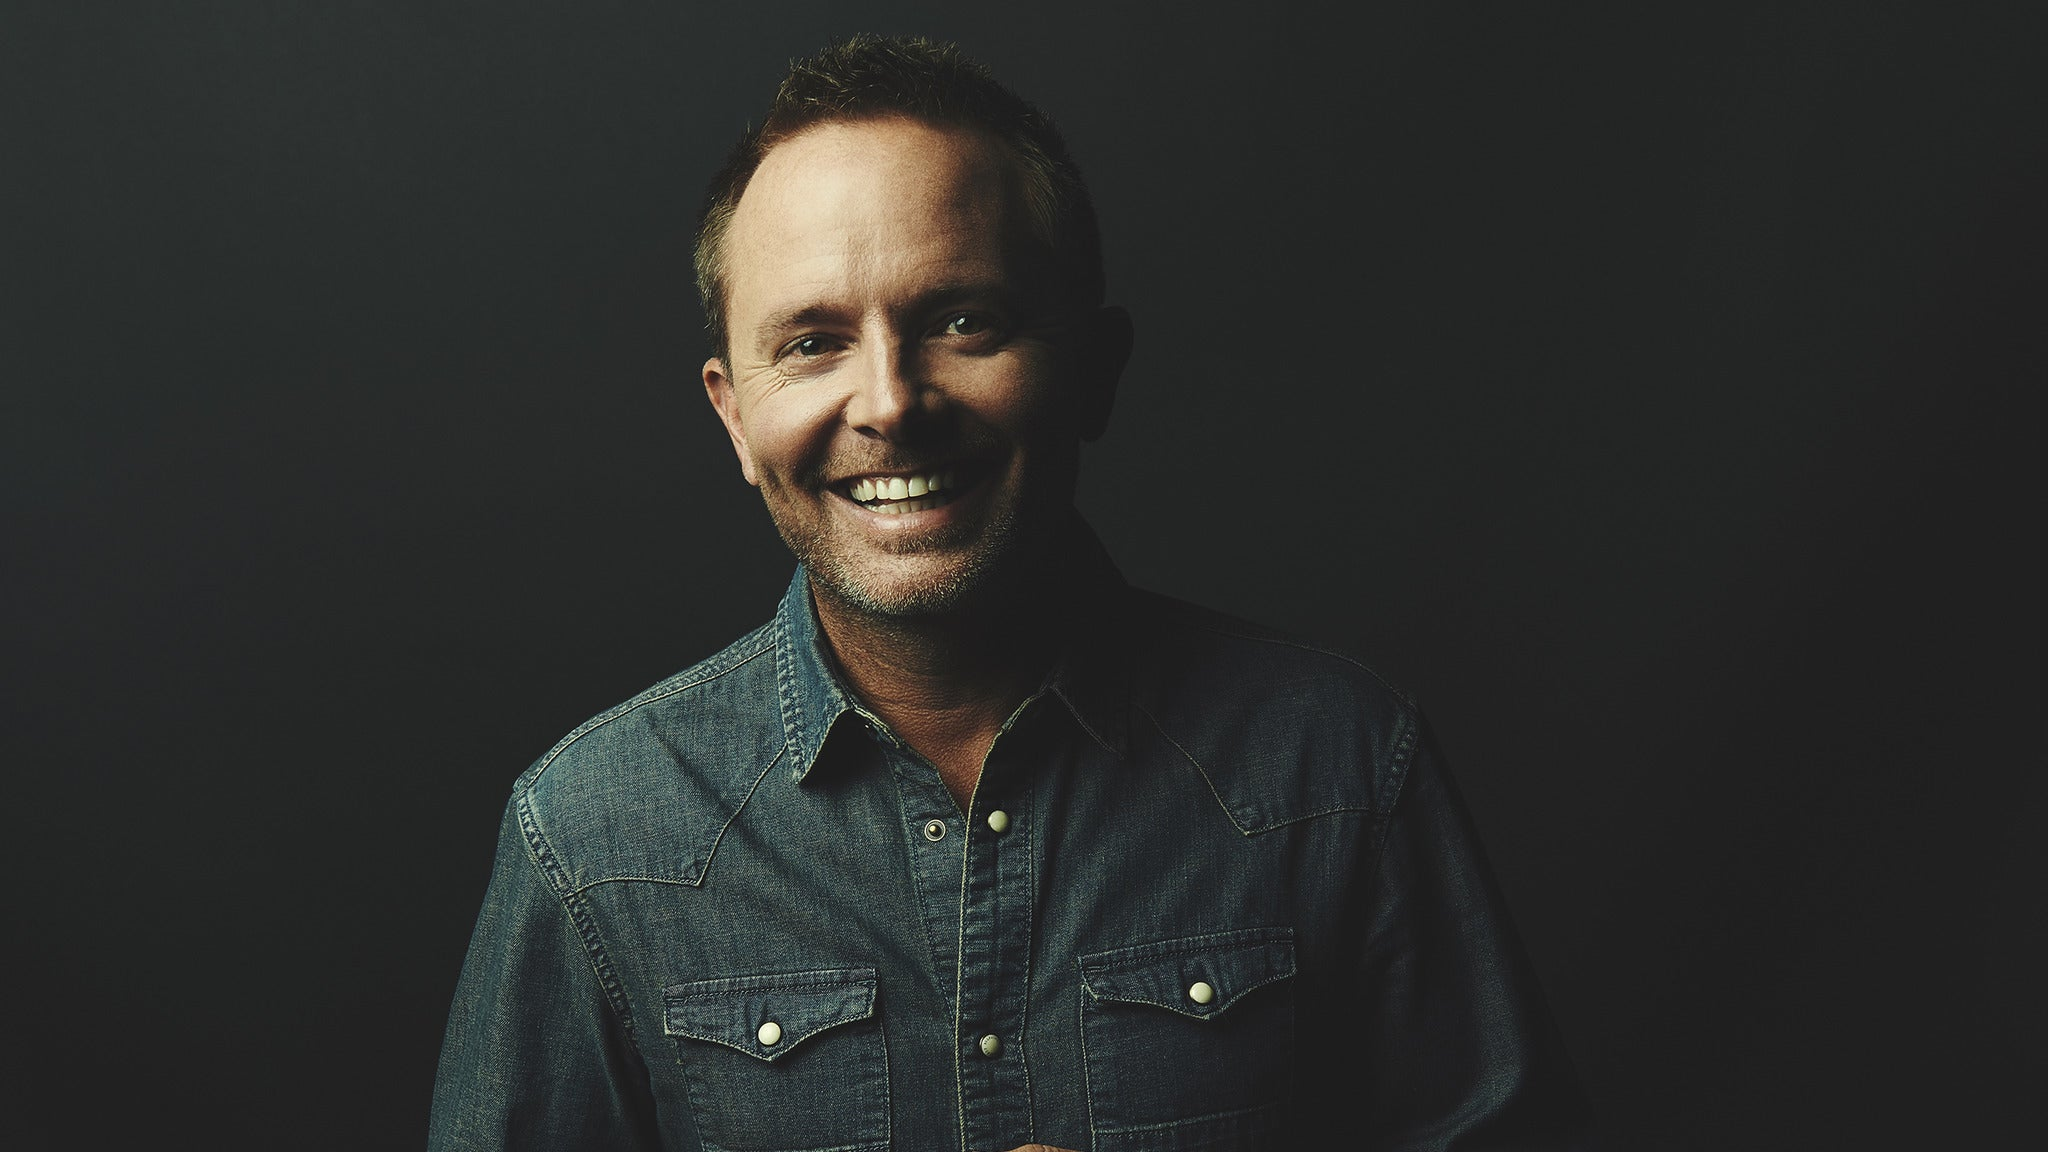 Chris Tomlin at Tsongas Center